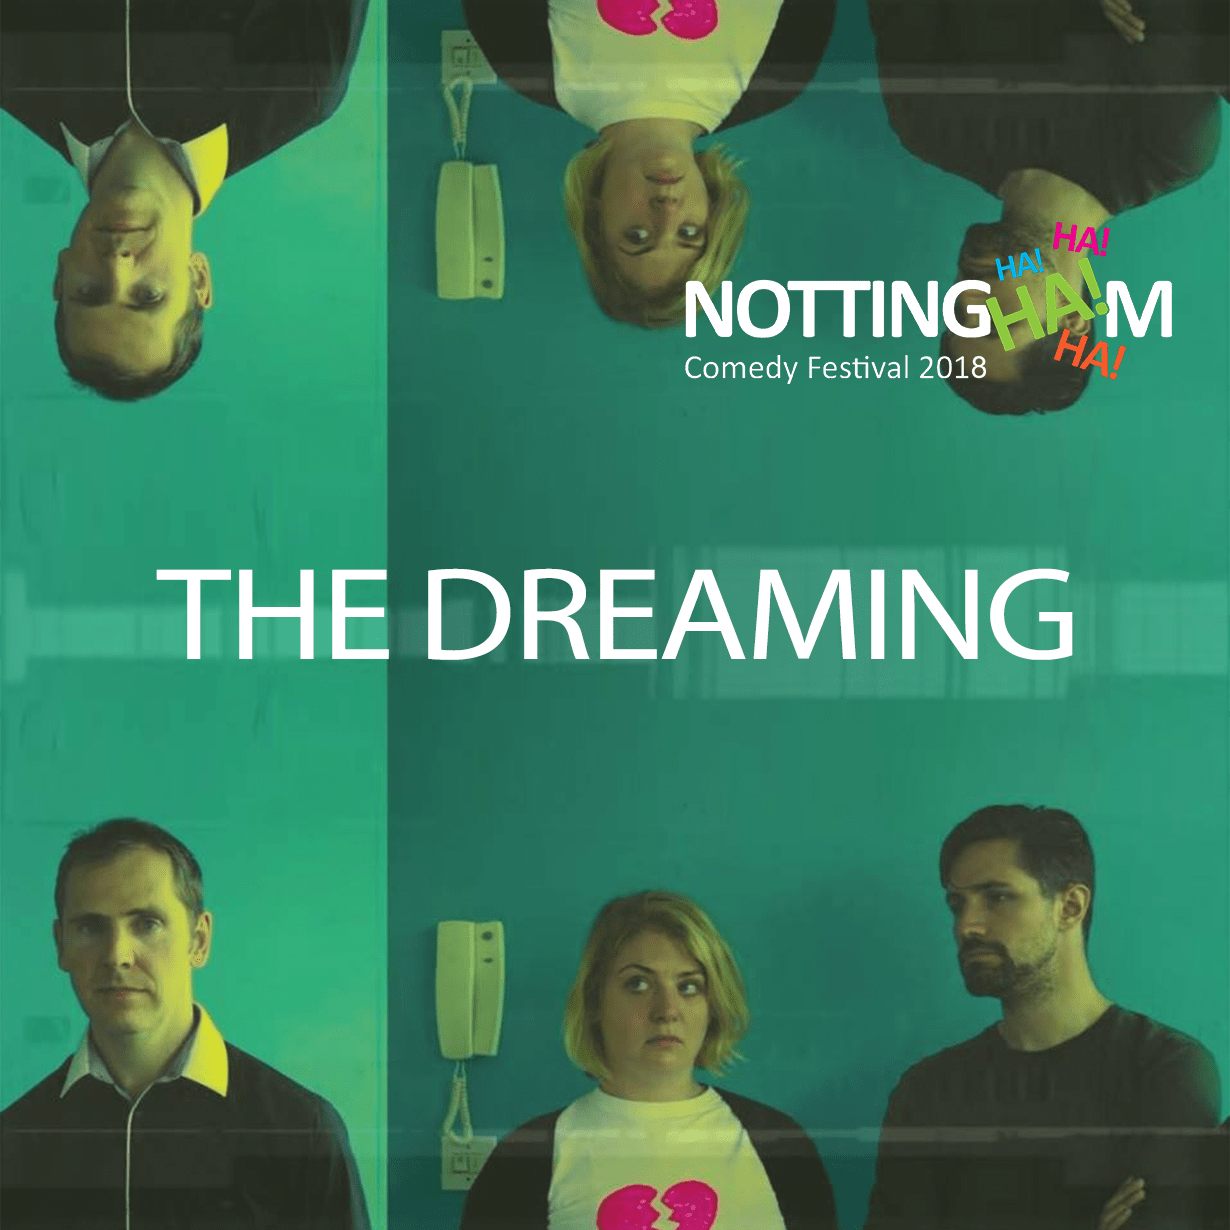 The Dreaming at Nottingham Comedy Festival